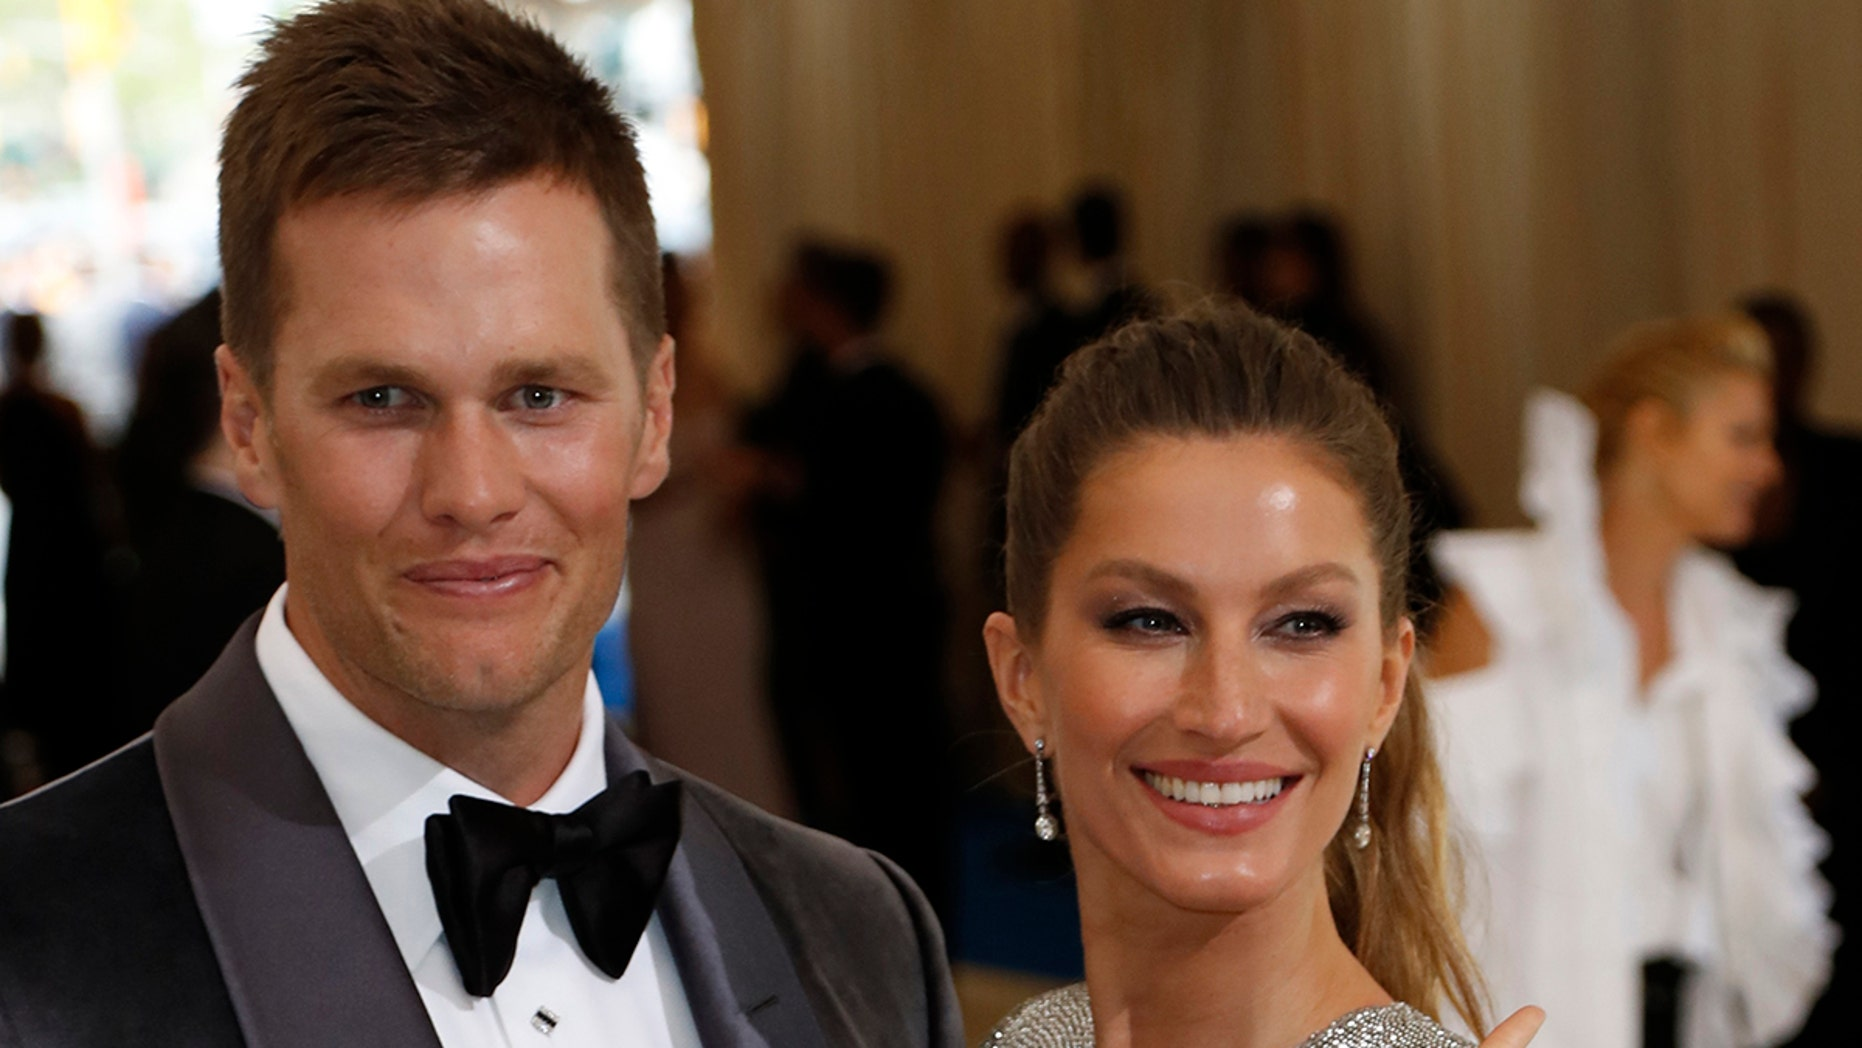 Metropolitan Museum of Art Costume Institute Gala - Rei Kawakubo/Comme des Garcons: Art of the In-Between - Arrivals - New York City, U.S. - 01/05/17 - Gisele Bundchen and husband, New England Patriots NFL quarterback Tom Brady. REUTERS/Lucas Jackson - HP1ED511RC0CW